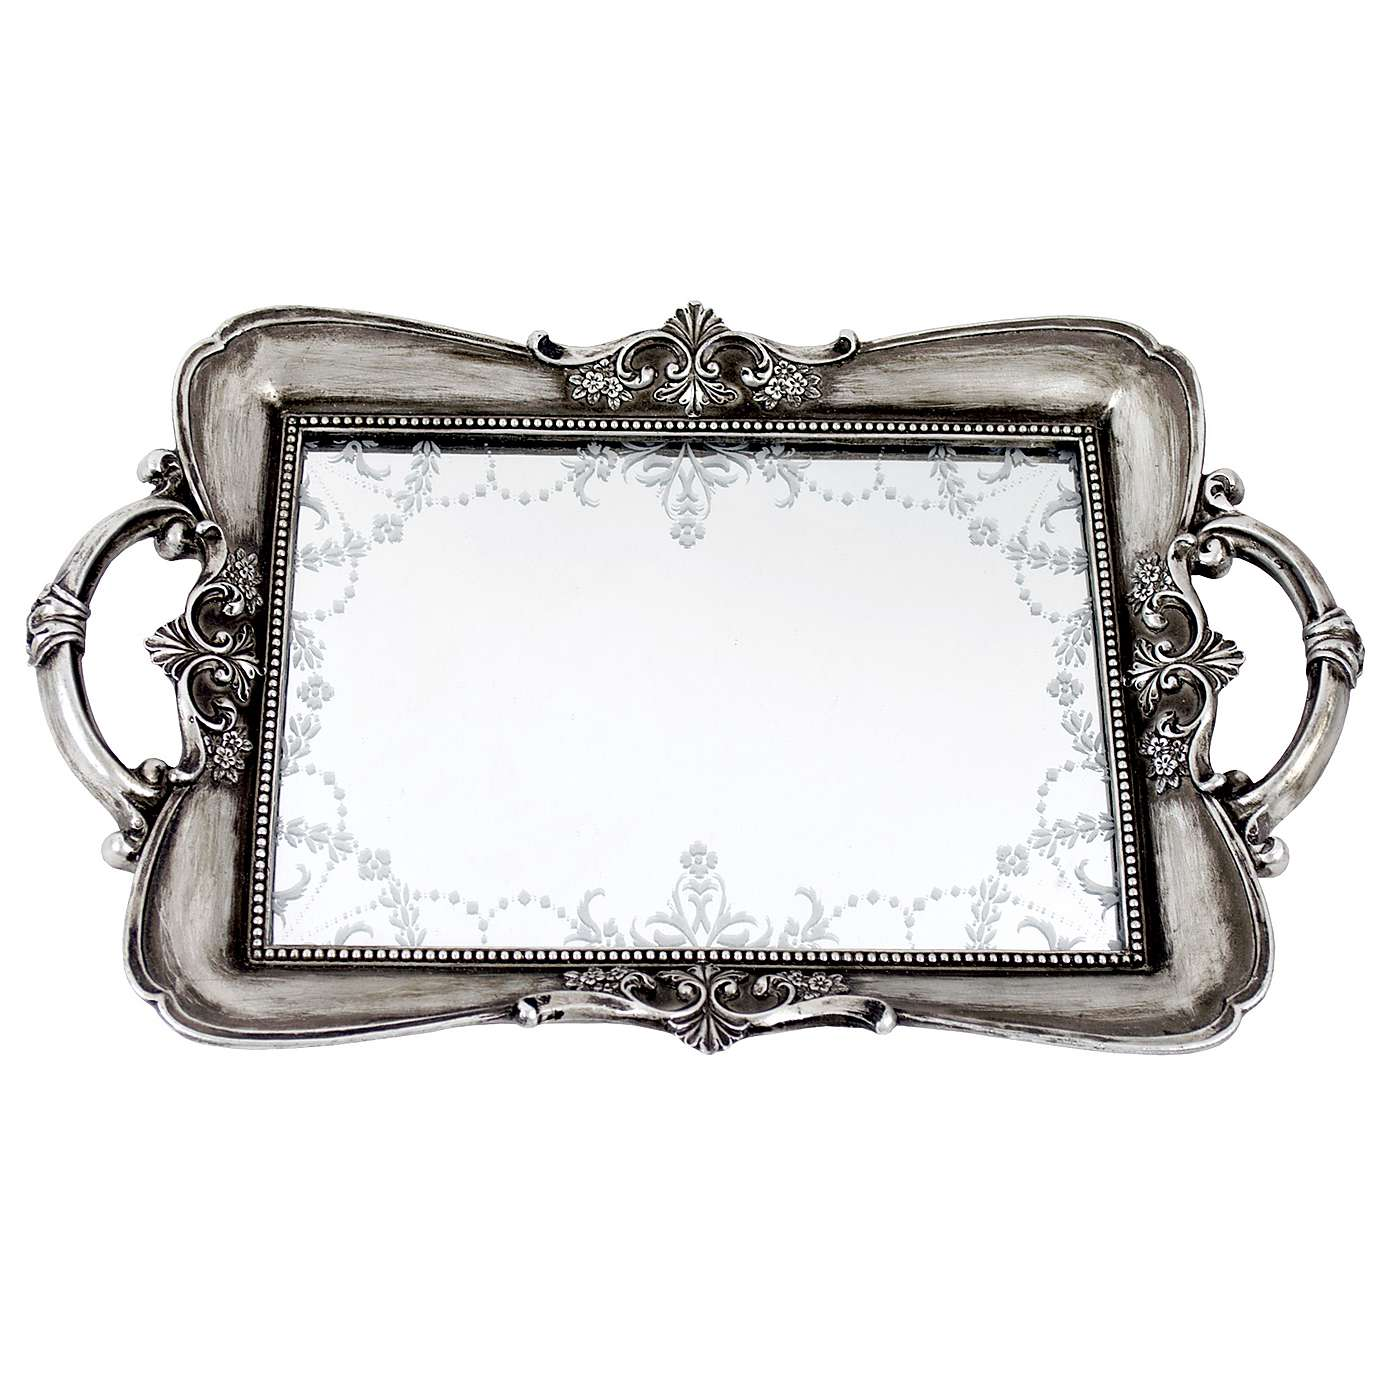 Captivating design mirror tray with modern design